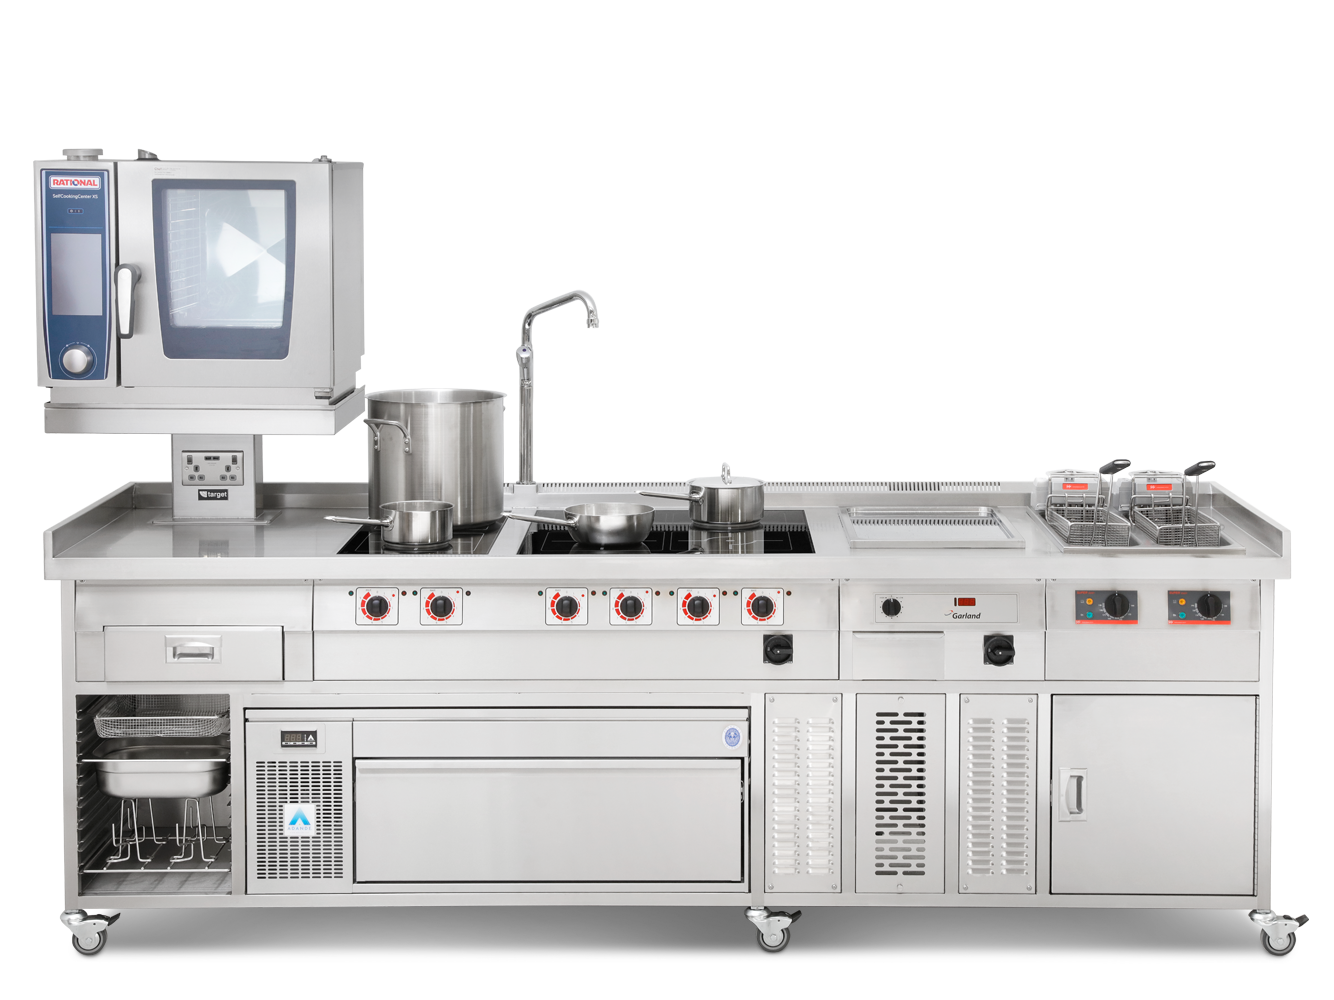 commercial-induction-range-with-hobs-fryer-plancha-oven.png